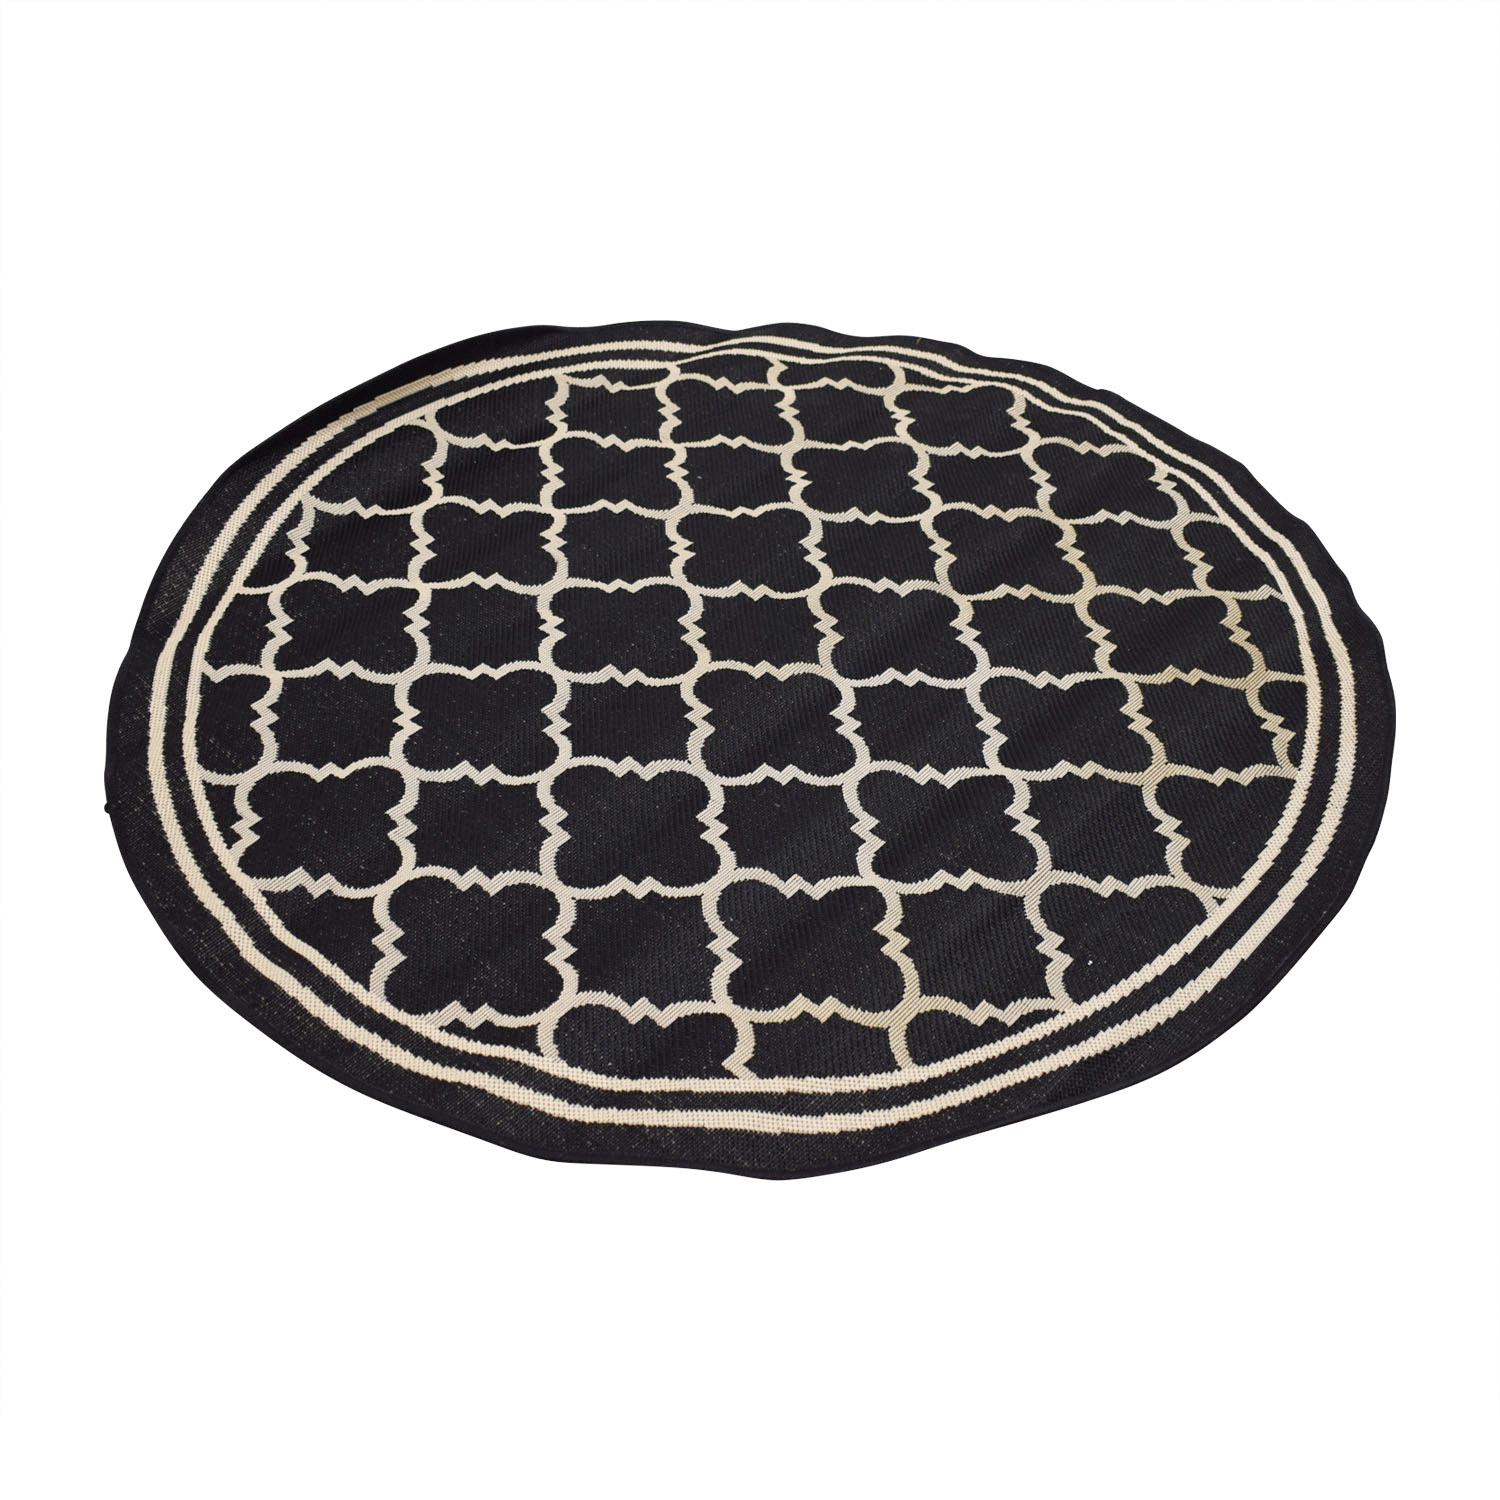 Safavieh Safavieh Courtyard Round Black Rug nj